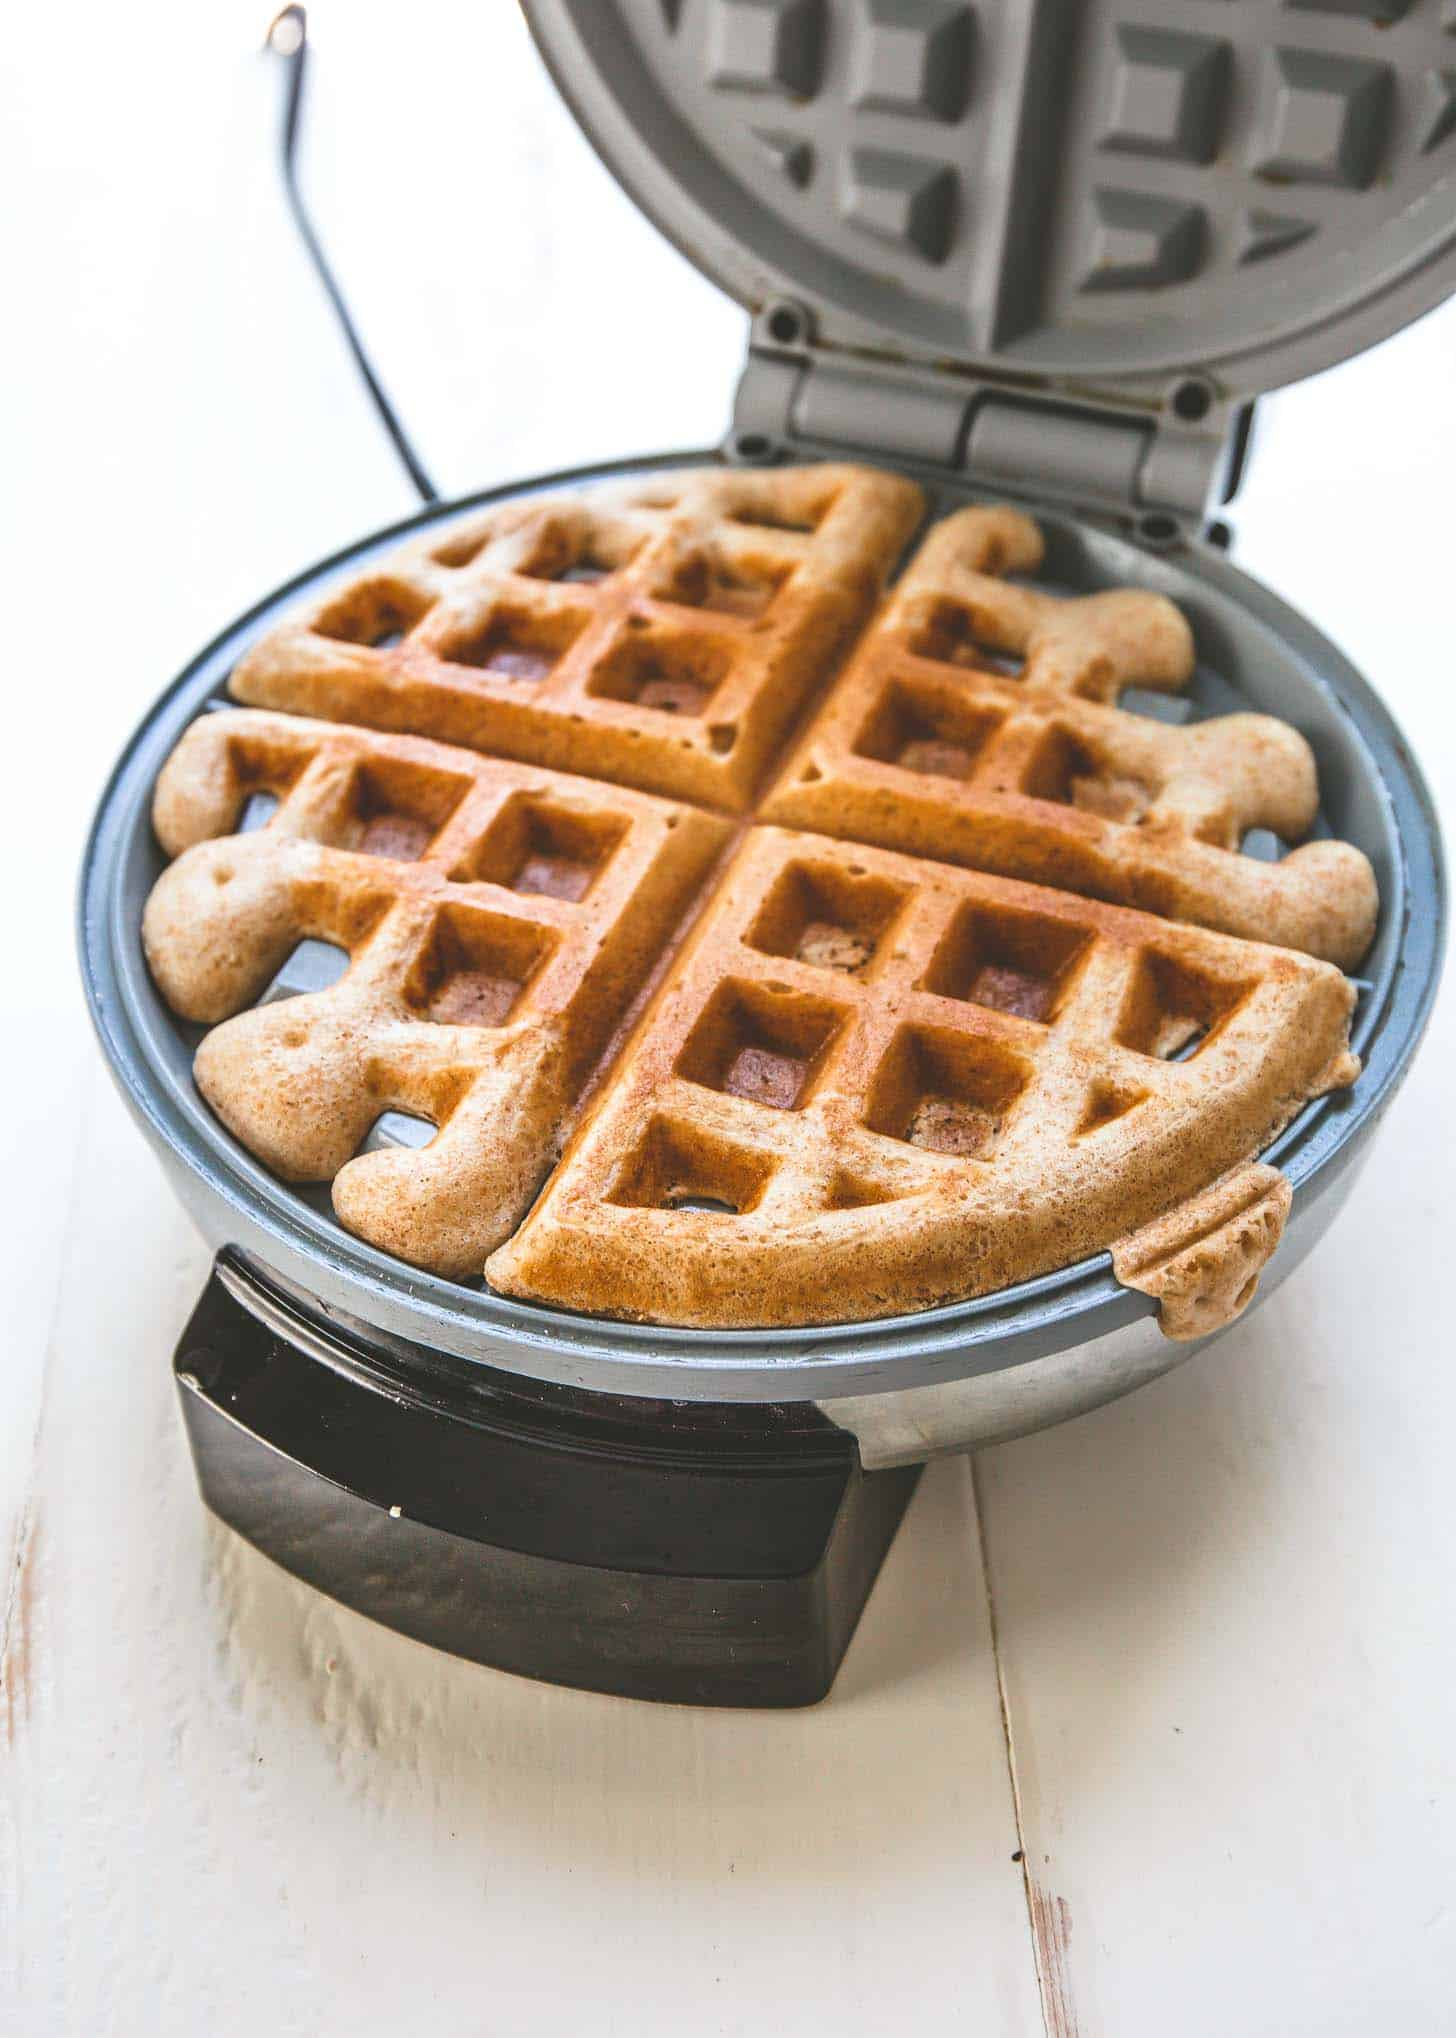 making a waffle in a waffle maker